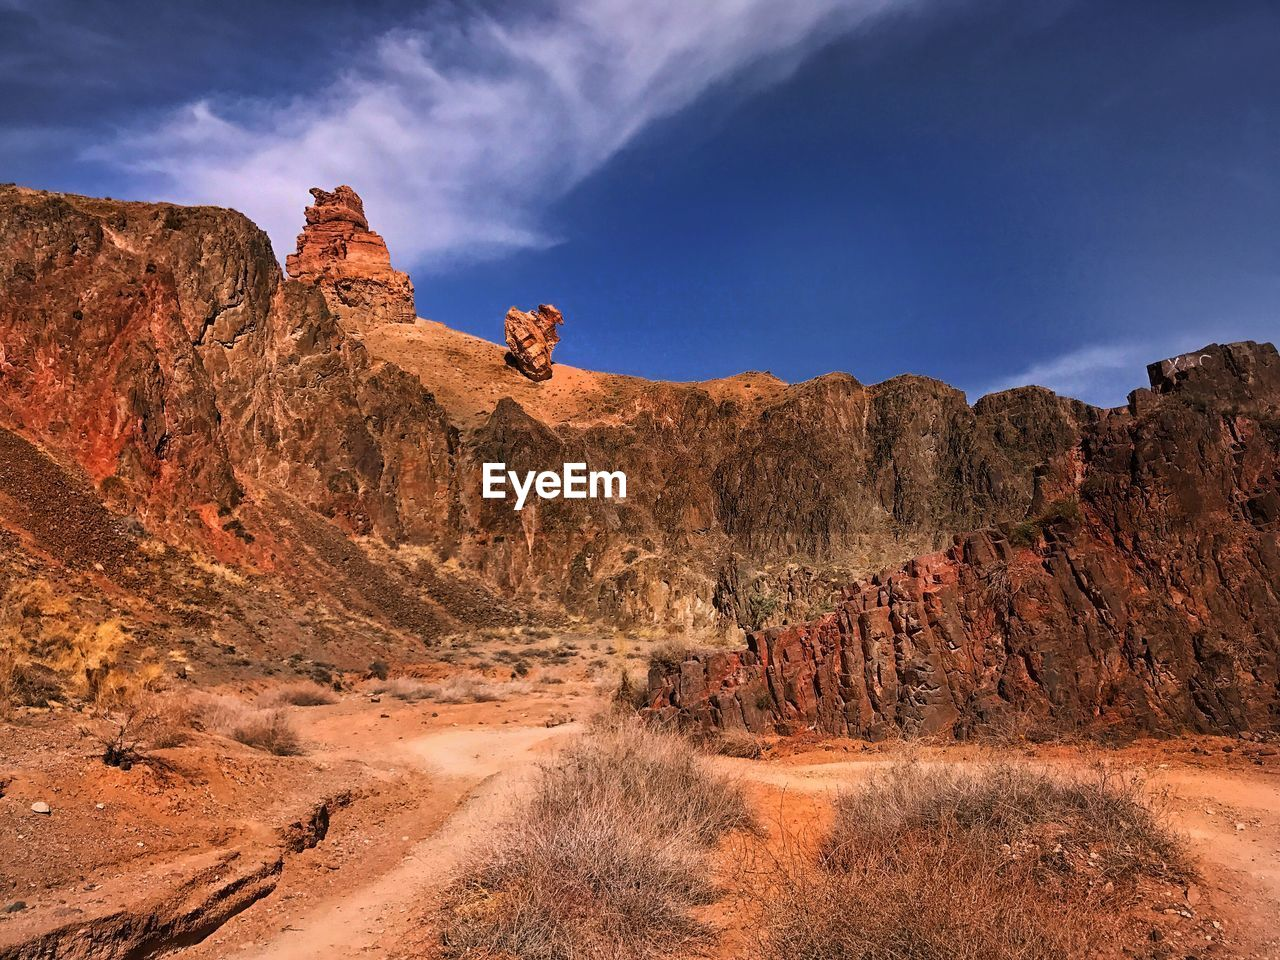 rock formation, rock, sky, rock - object, scenics - nature, solid, beauty in nature, mountain, non-urban scene, nature, tranquil scene, geology, environment, tranquility, physical geography, travel destinations, landscape, day, no people, land, mountain range, formation, arid climate, eroded, climate, outdoors, semi-arid, sandstone